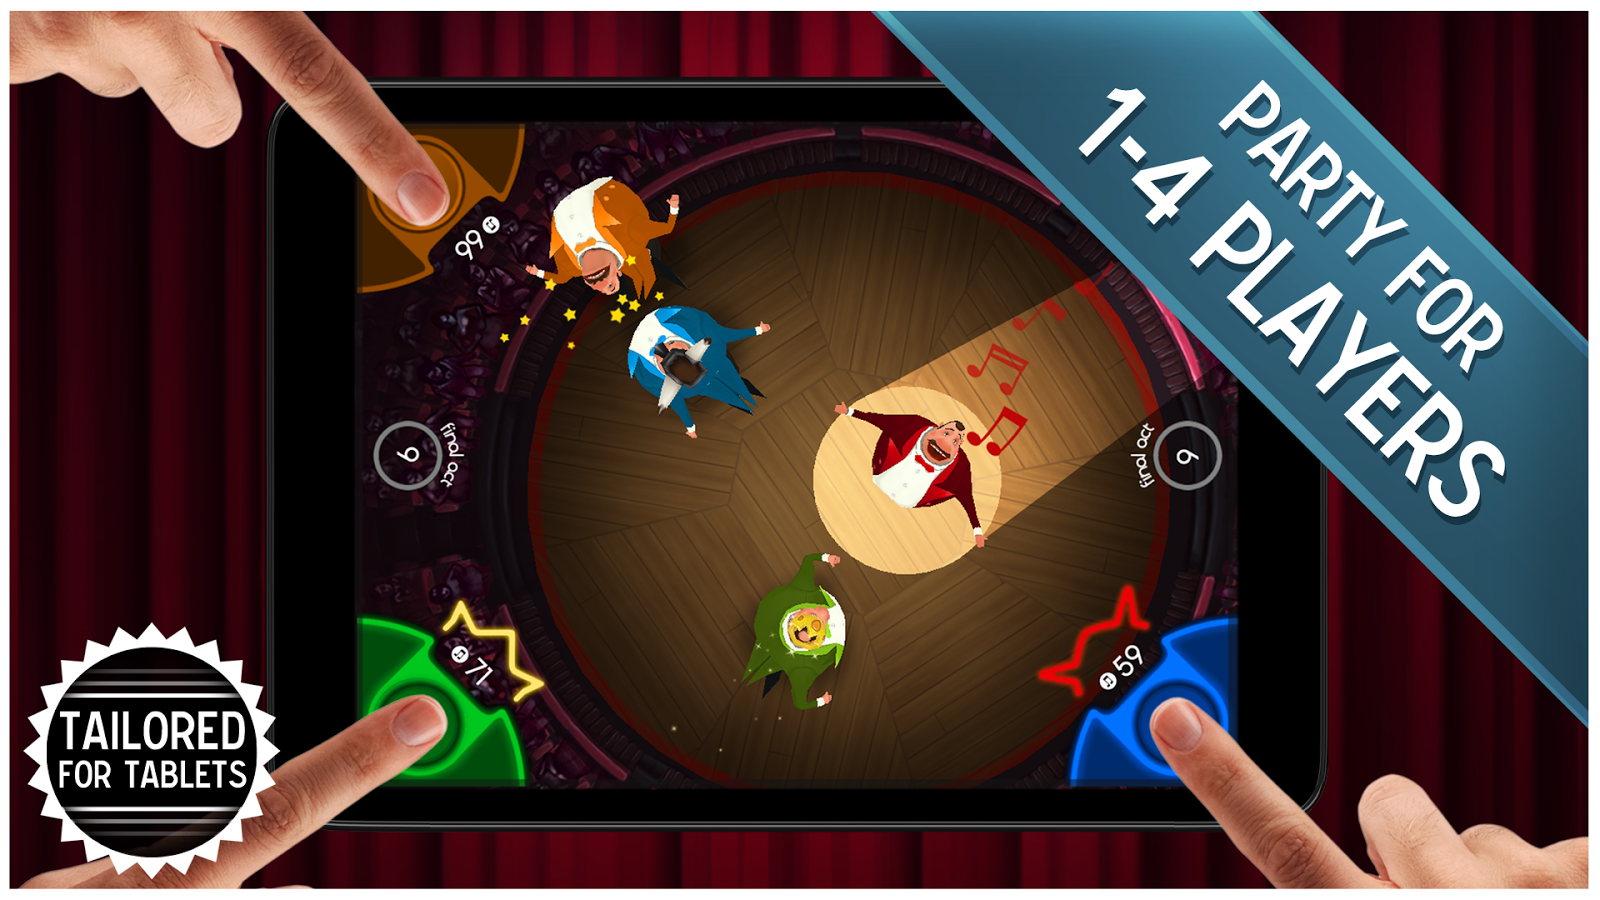 King of Opera - Party Game! Screenshot 10